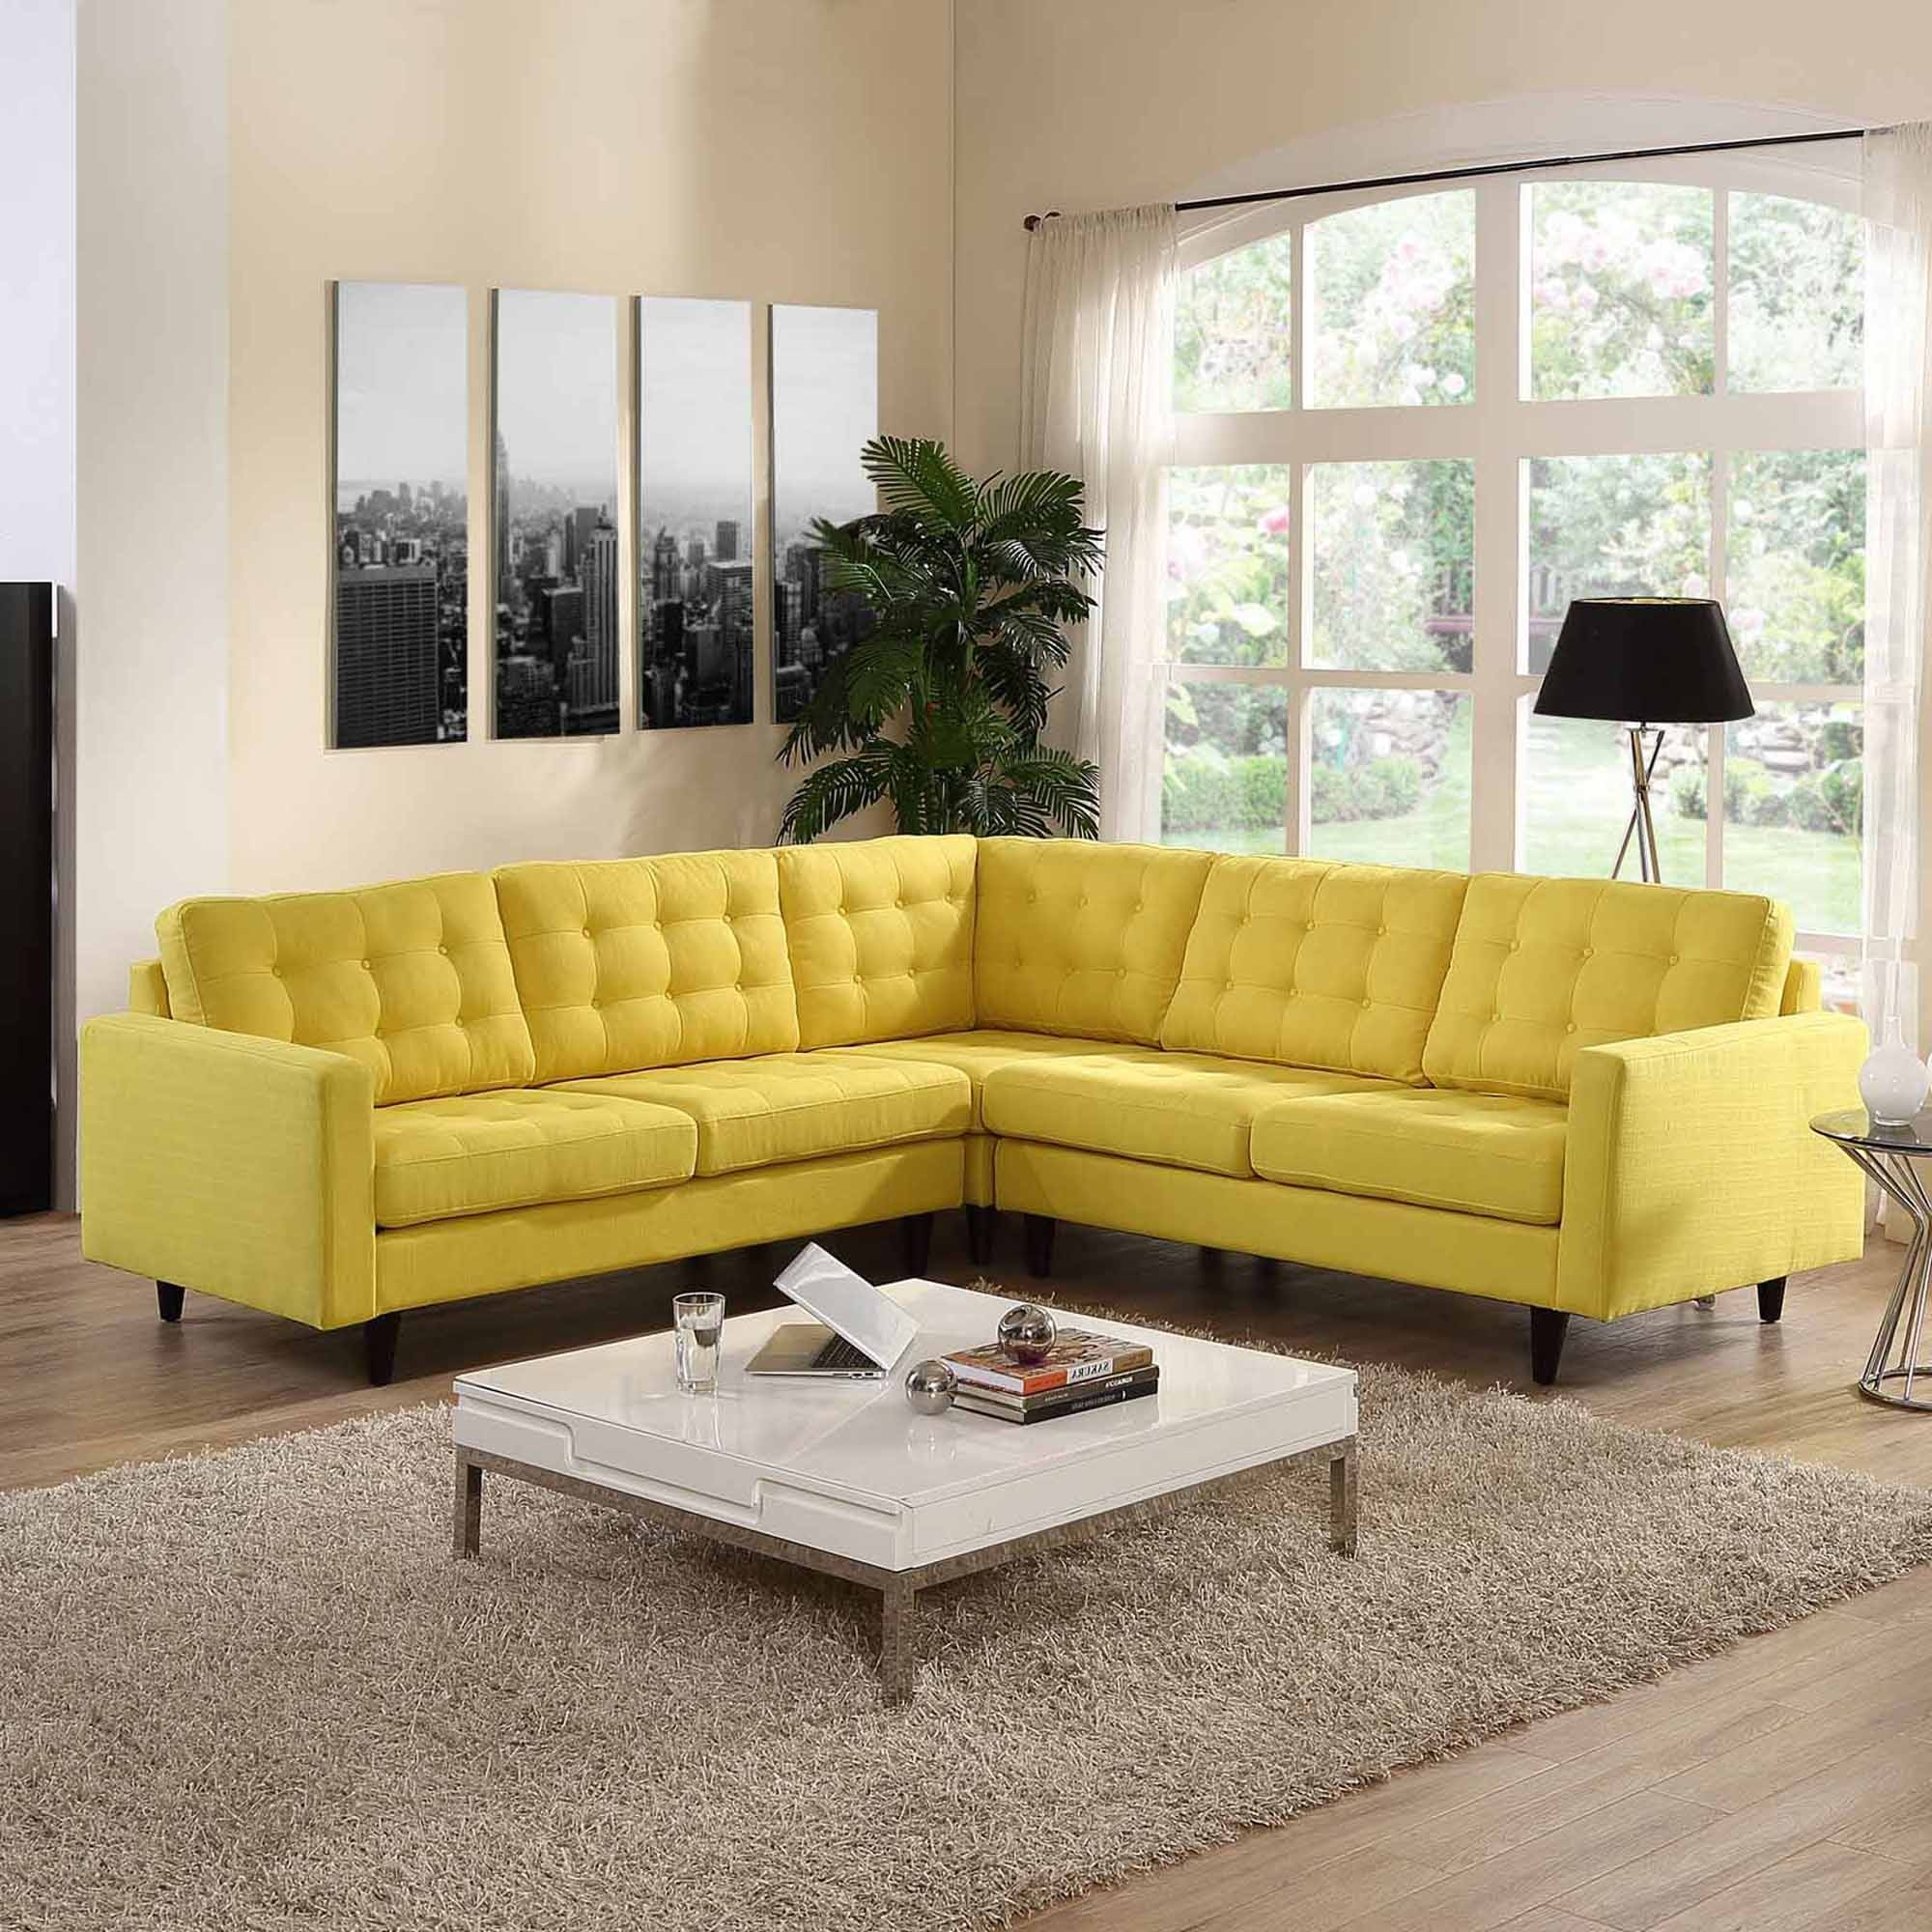 Popular Peterborough Ontario Sectional Sofas With Furniture : Sofa Sale Quick Delivery Sofa Craigslist Lafayette (View 12 of 20)